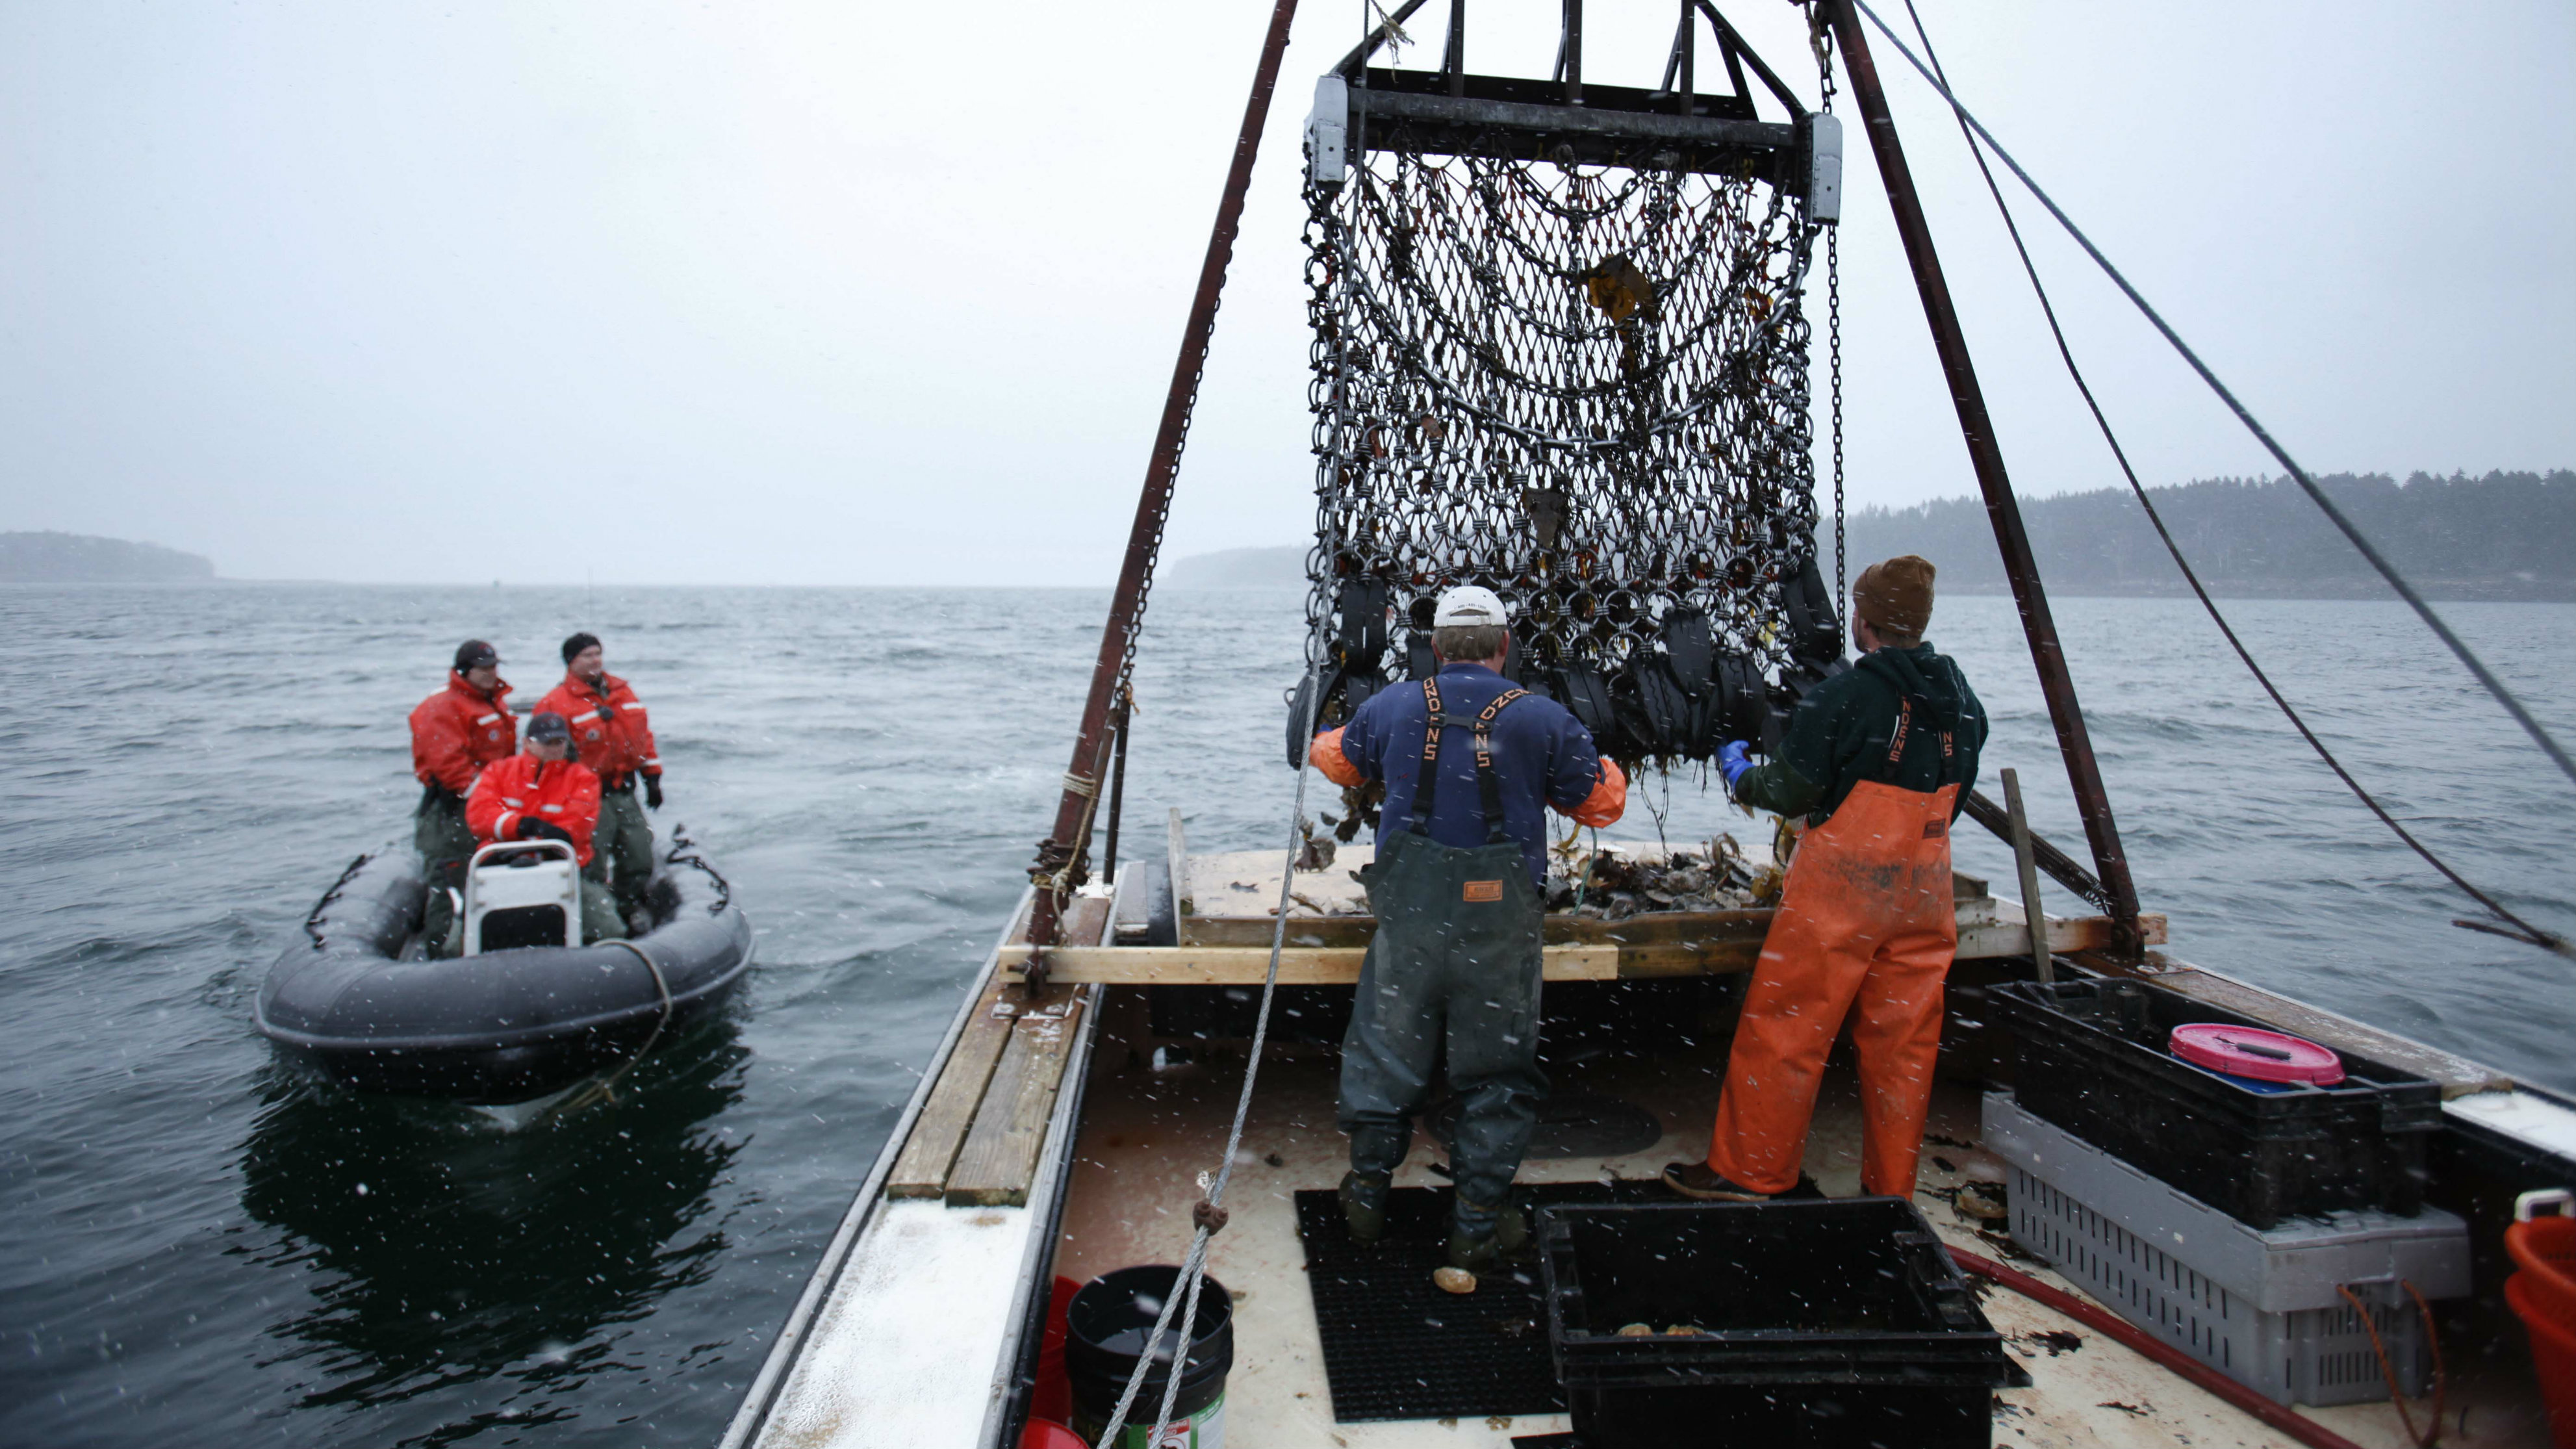 In this photo made Saturday, Dec. 17, 2011, Marine Patrol officers, left, arrive for a routine inspection aboard scallop fisherman Donald Ricker's boat off Harpswell, Maine. Maine scallops are high quality because they're brought to shore the same day that boats drag them off the ocean floor or divers harvest them by hand. (AP Photo/Robert F. Bukaty)